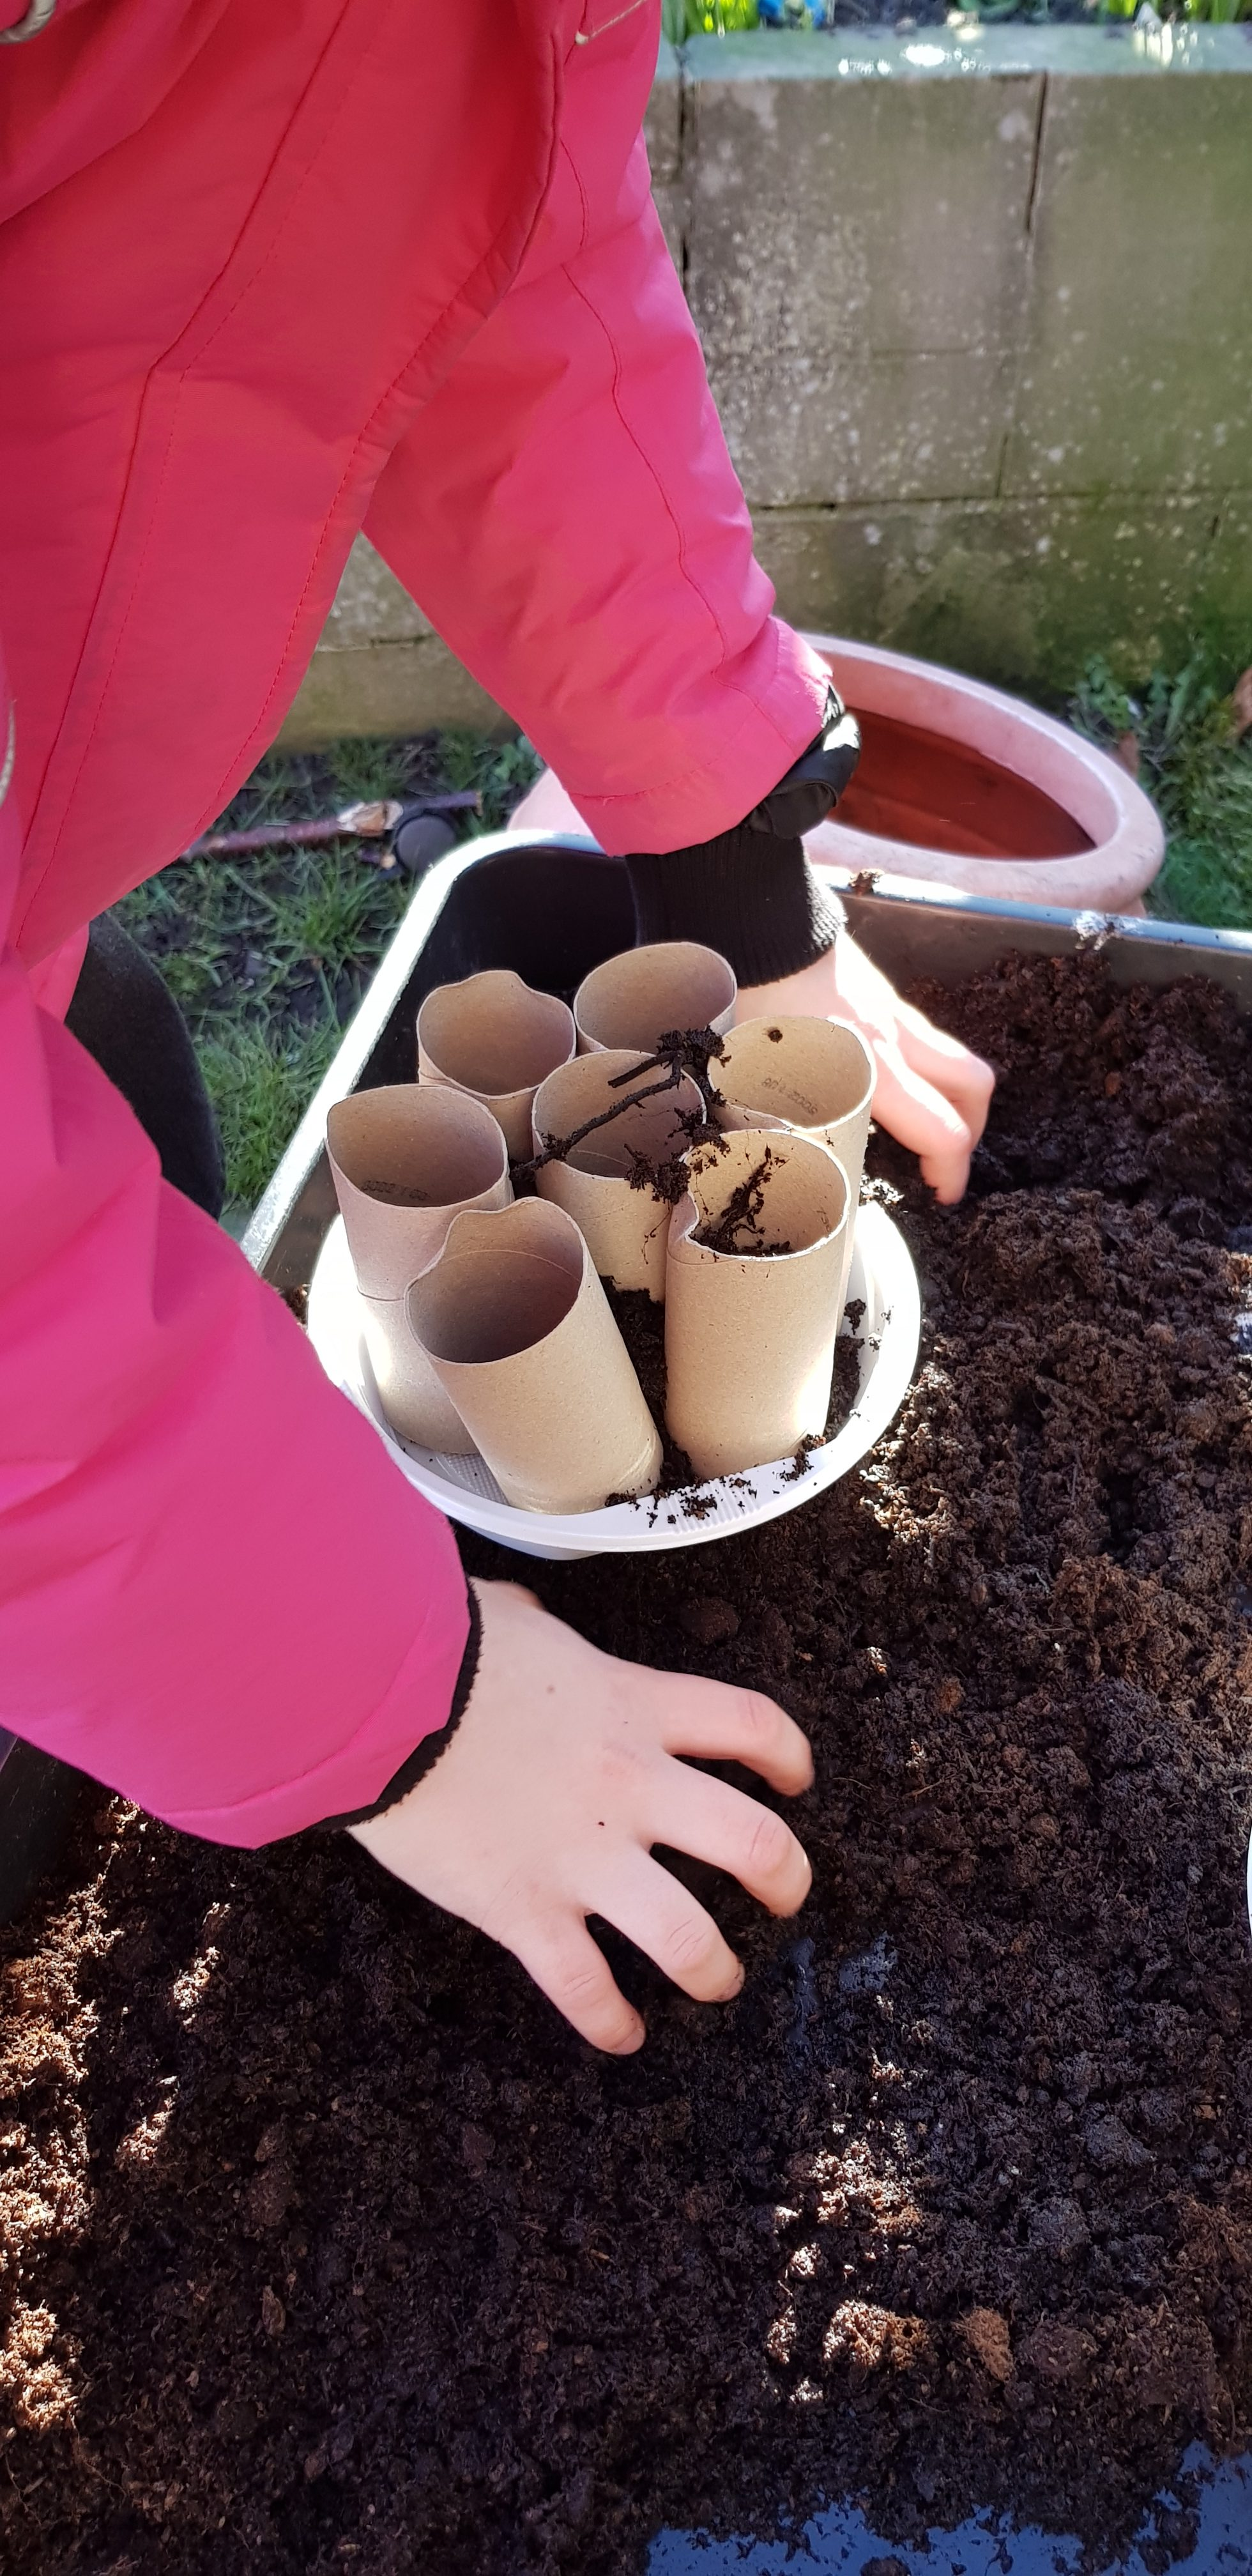 Seed sowing and recycling ideas